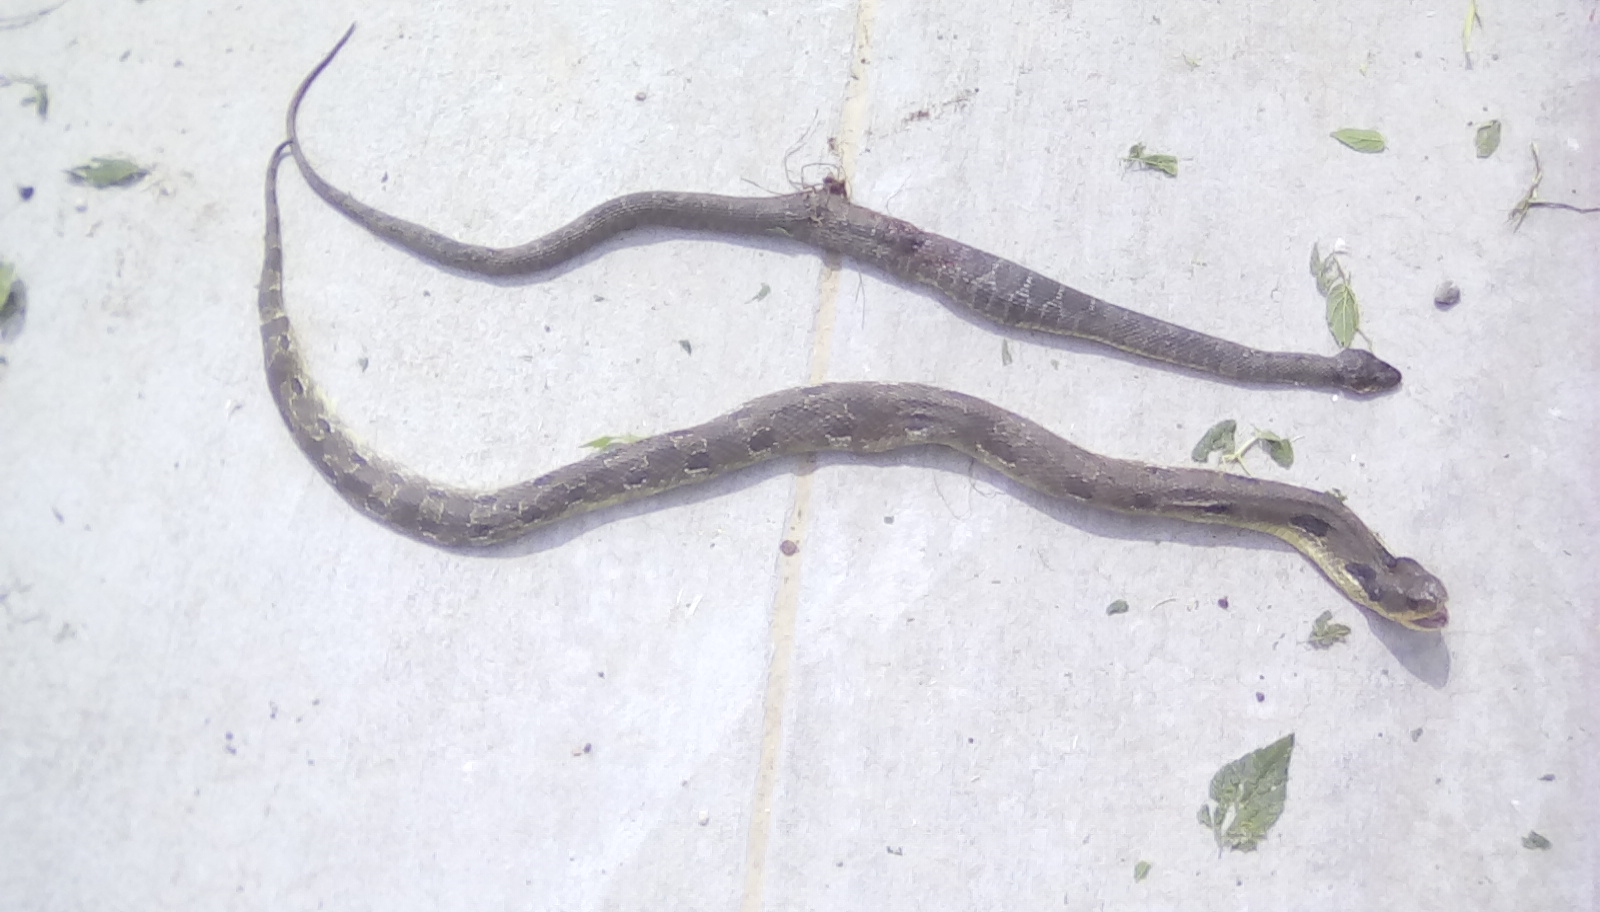 Two snakes recently killed in a residential neighborhood on Buffalo Bayou were not venomous.